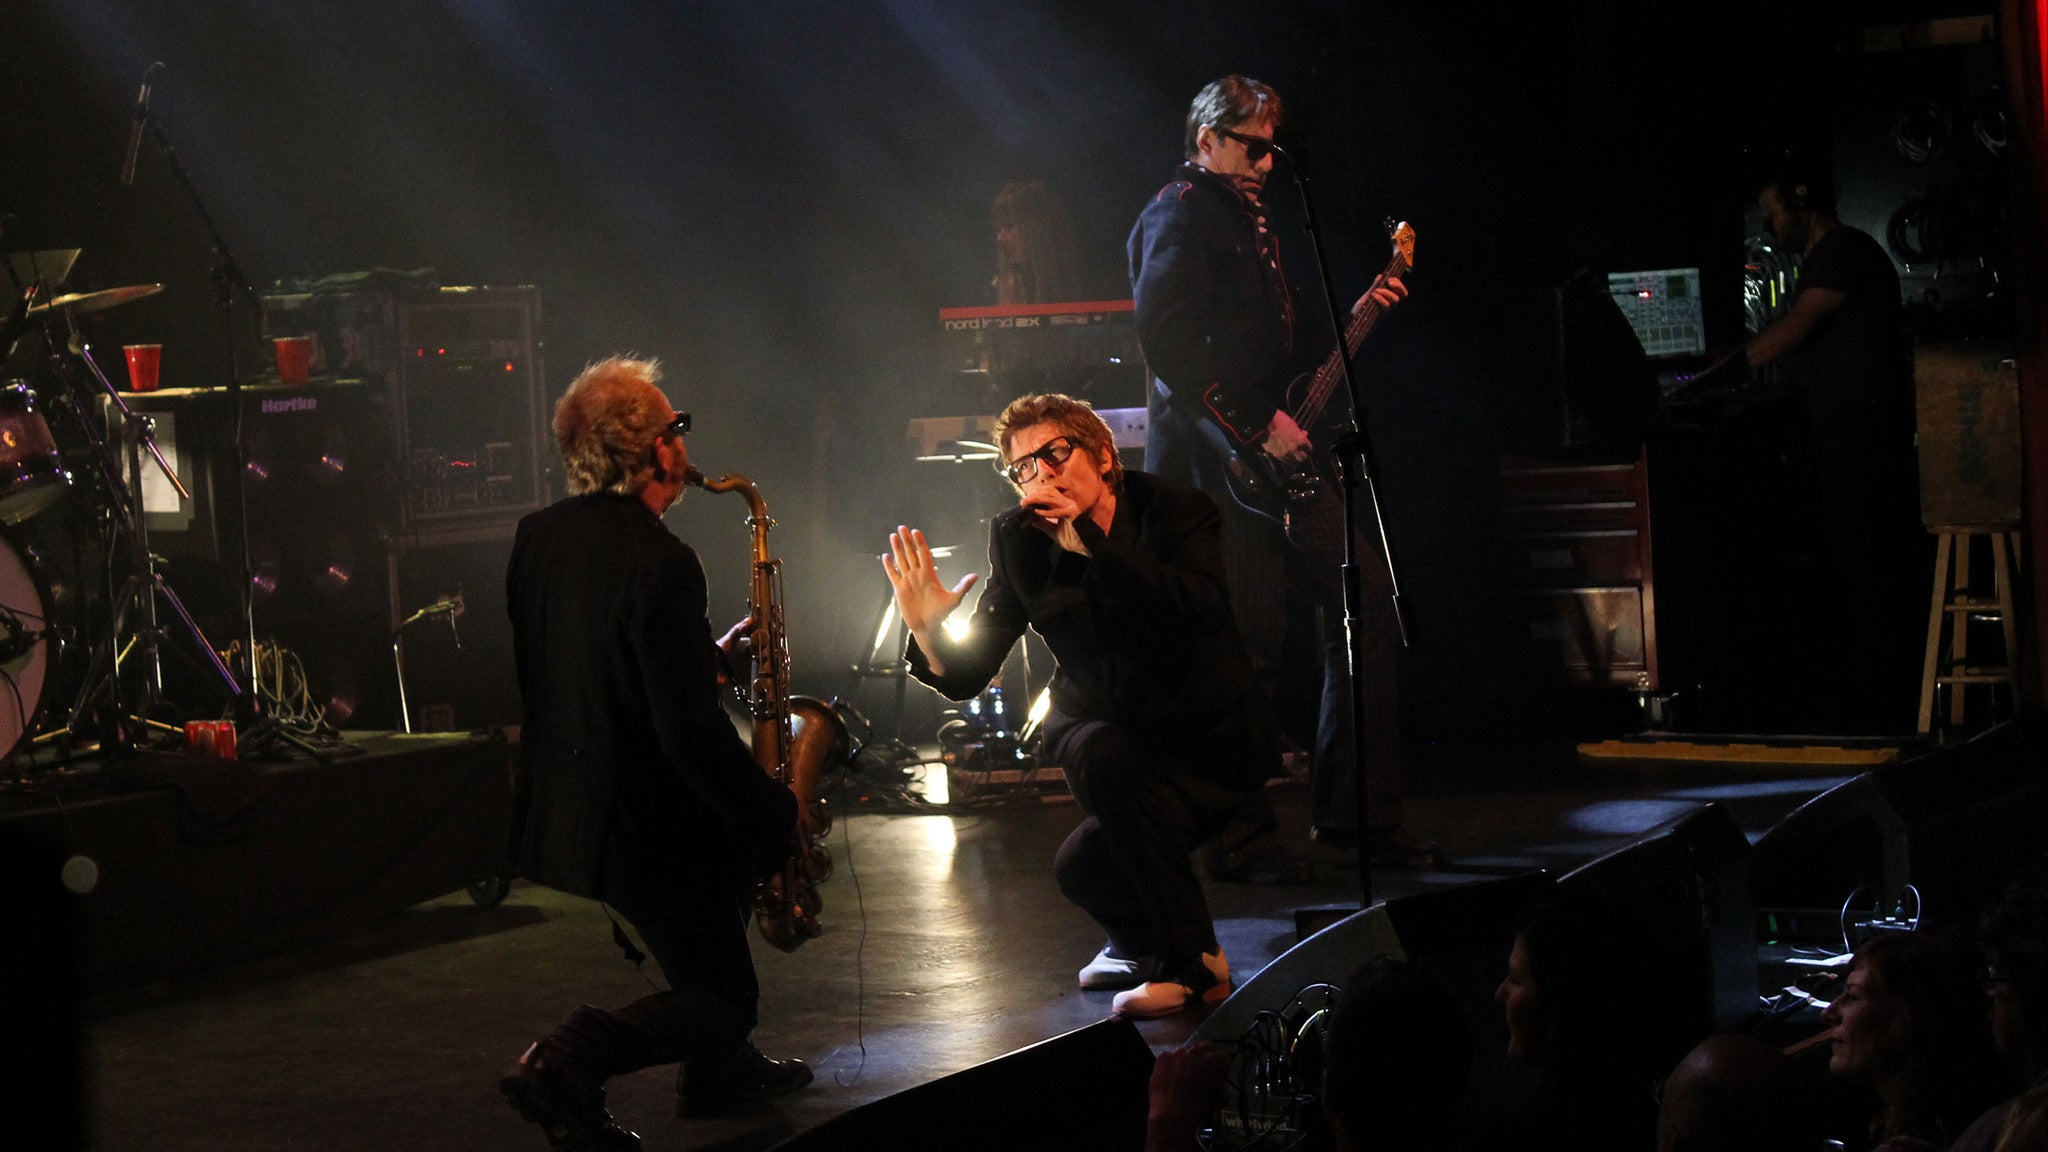 The Psychedelic Furs at Count Basie Center for the Arts